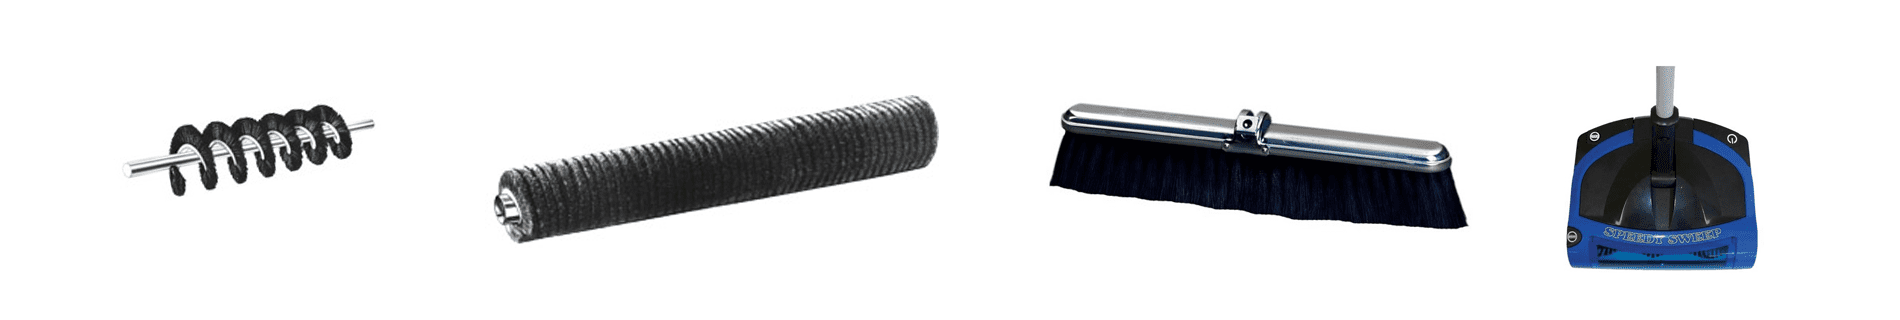 Industrial Brushes banner